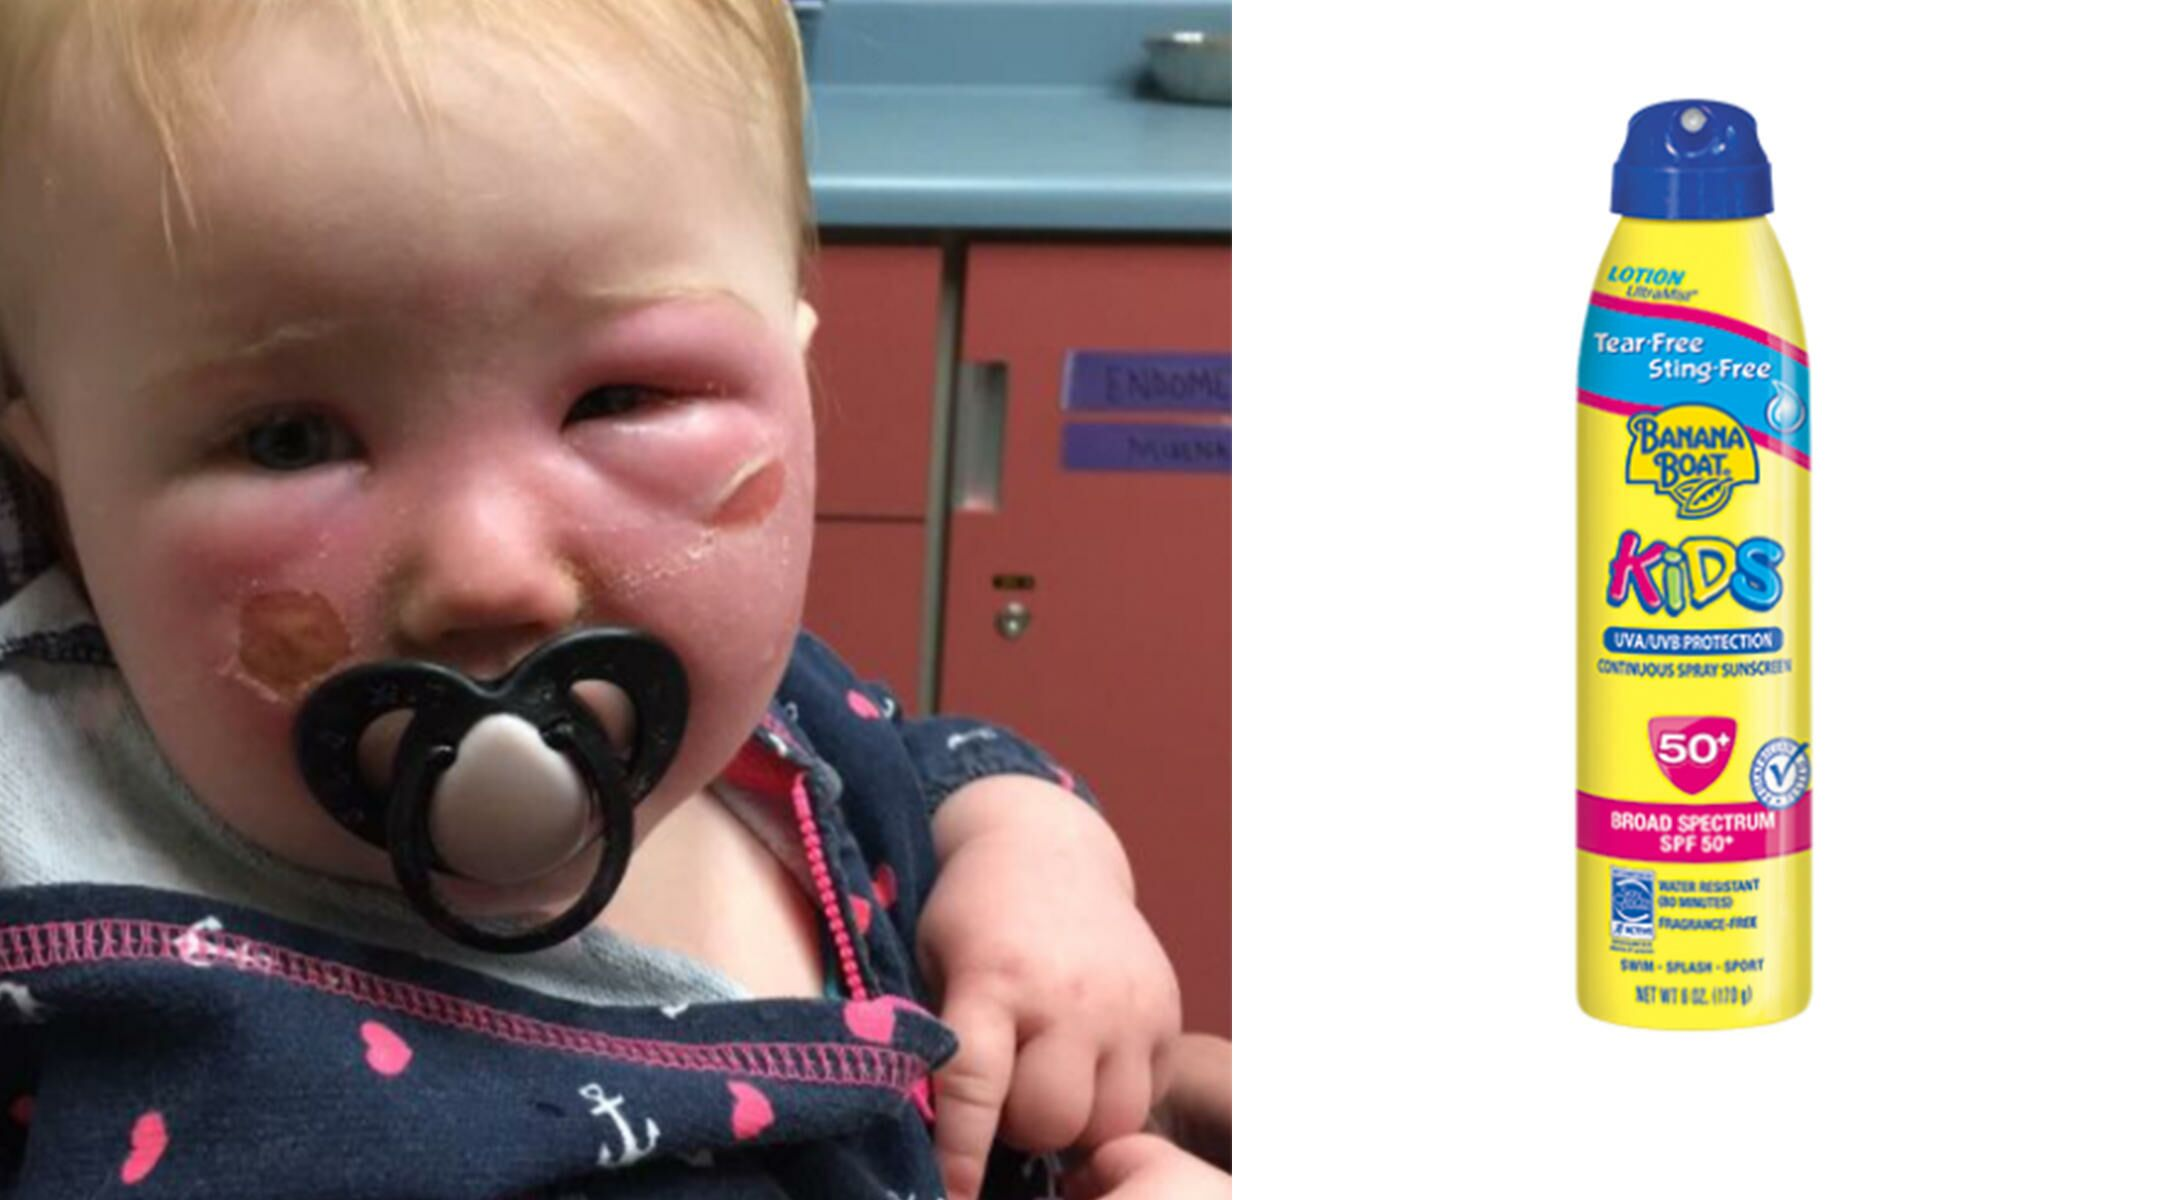 This Baby's Burns Warn Against - 138.6KB